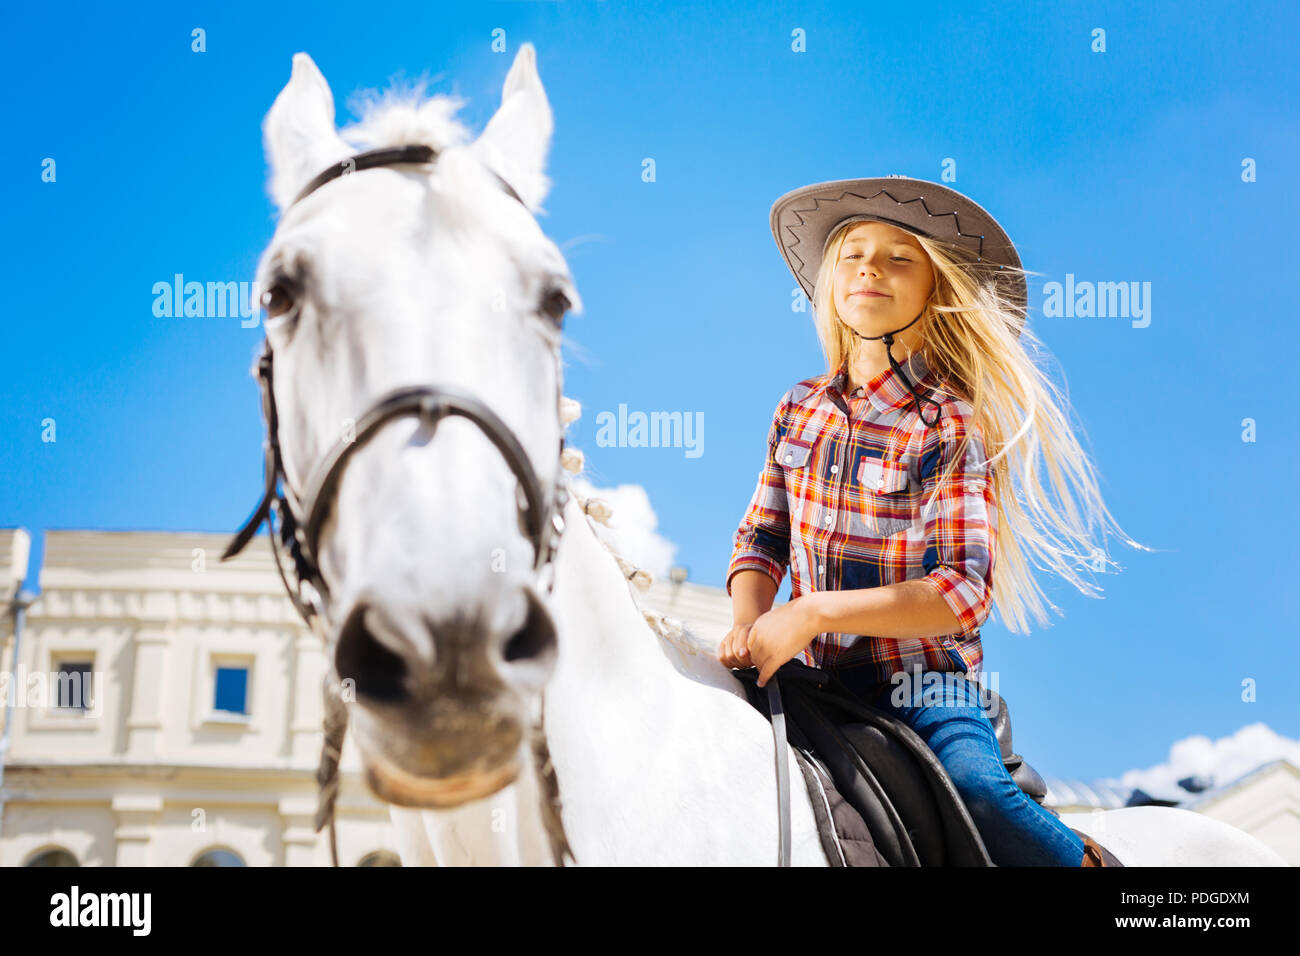 Girl with long blonde hair feeling nice while riding horse - Stock Image